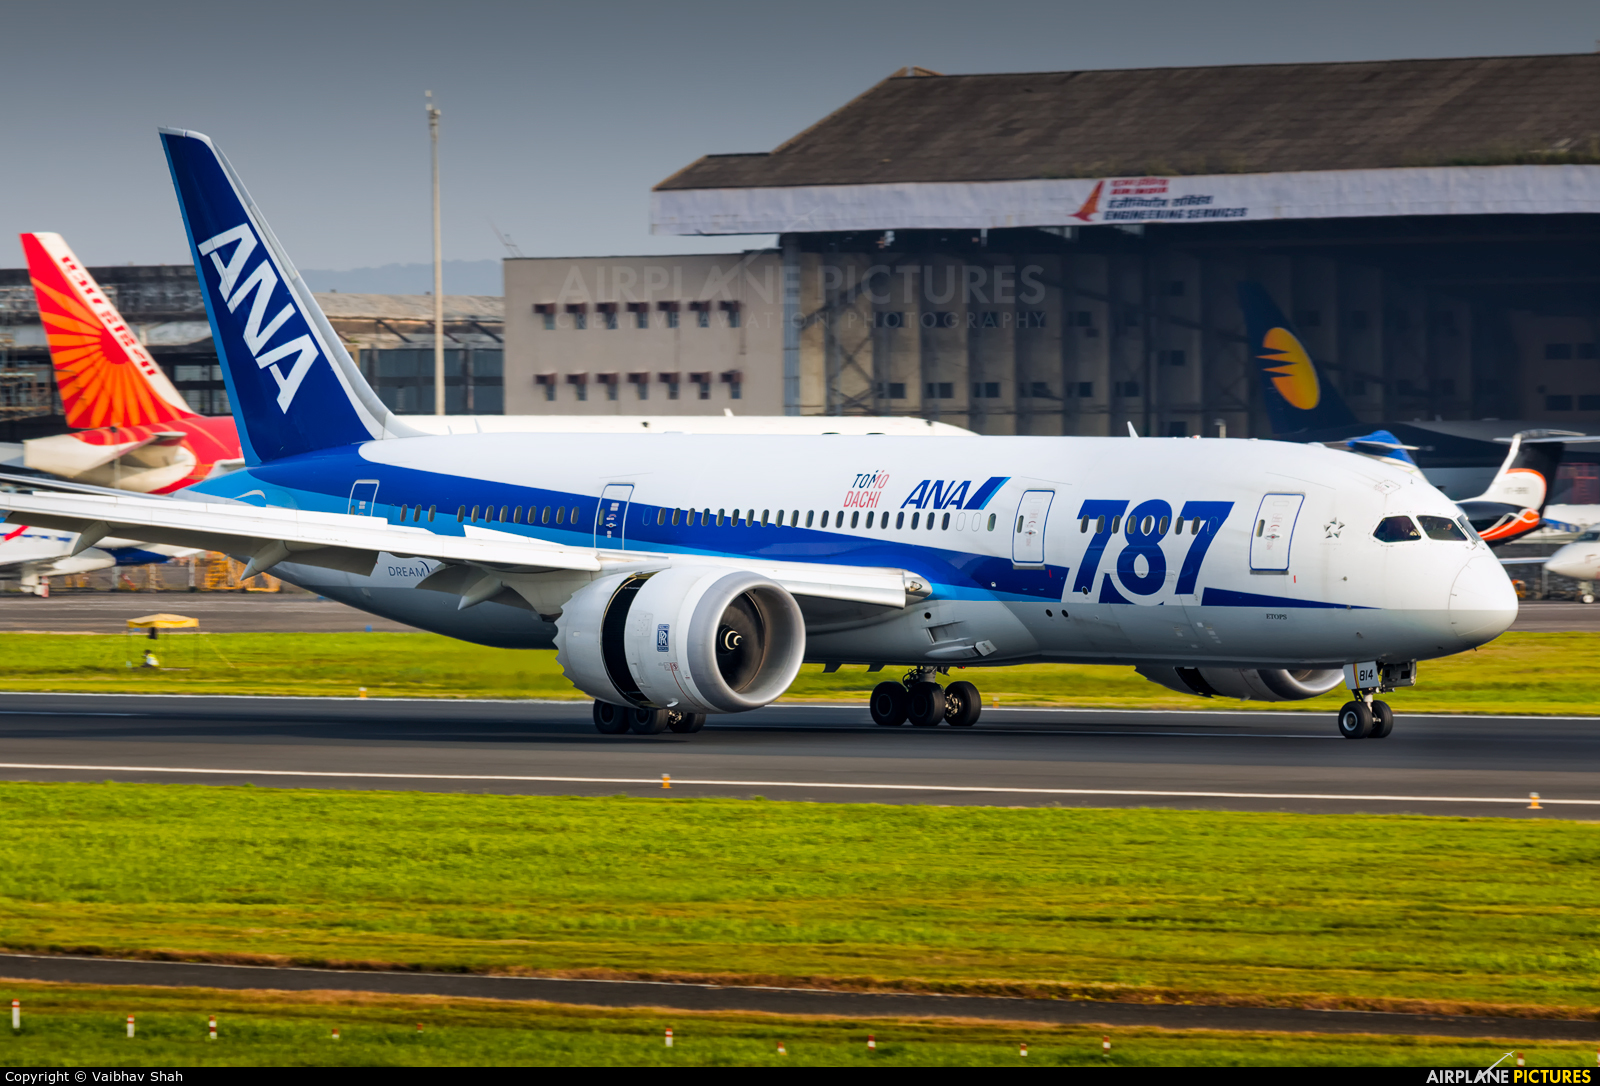 ANA - All Nippon Airways JA814A aircraft at Mumbai - Chhatrapati Shivaji Intl